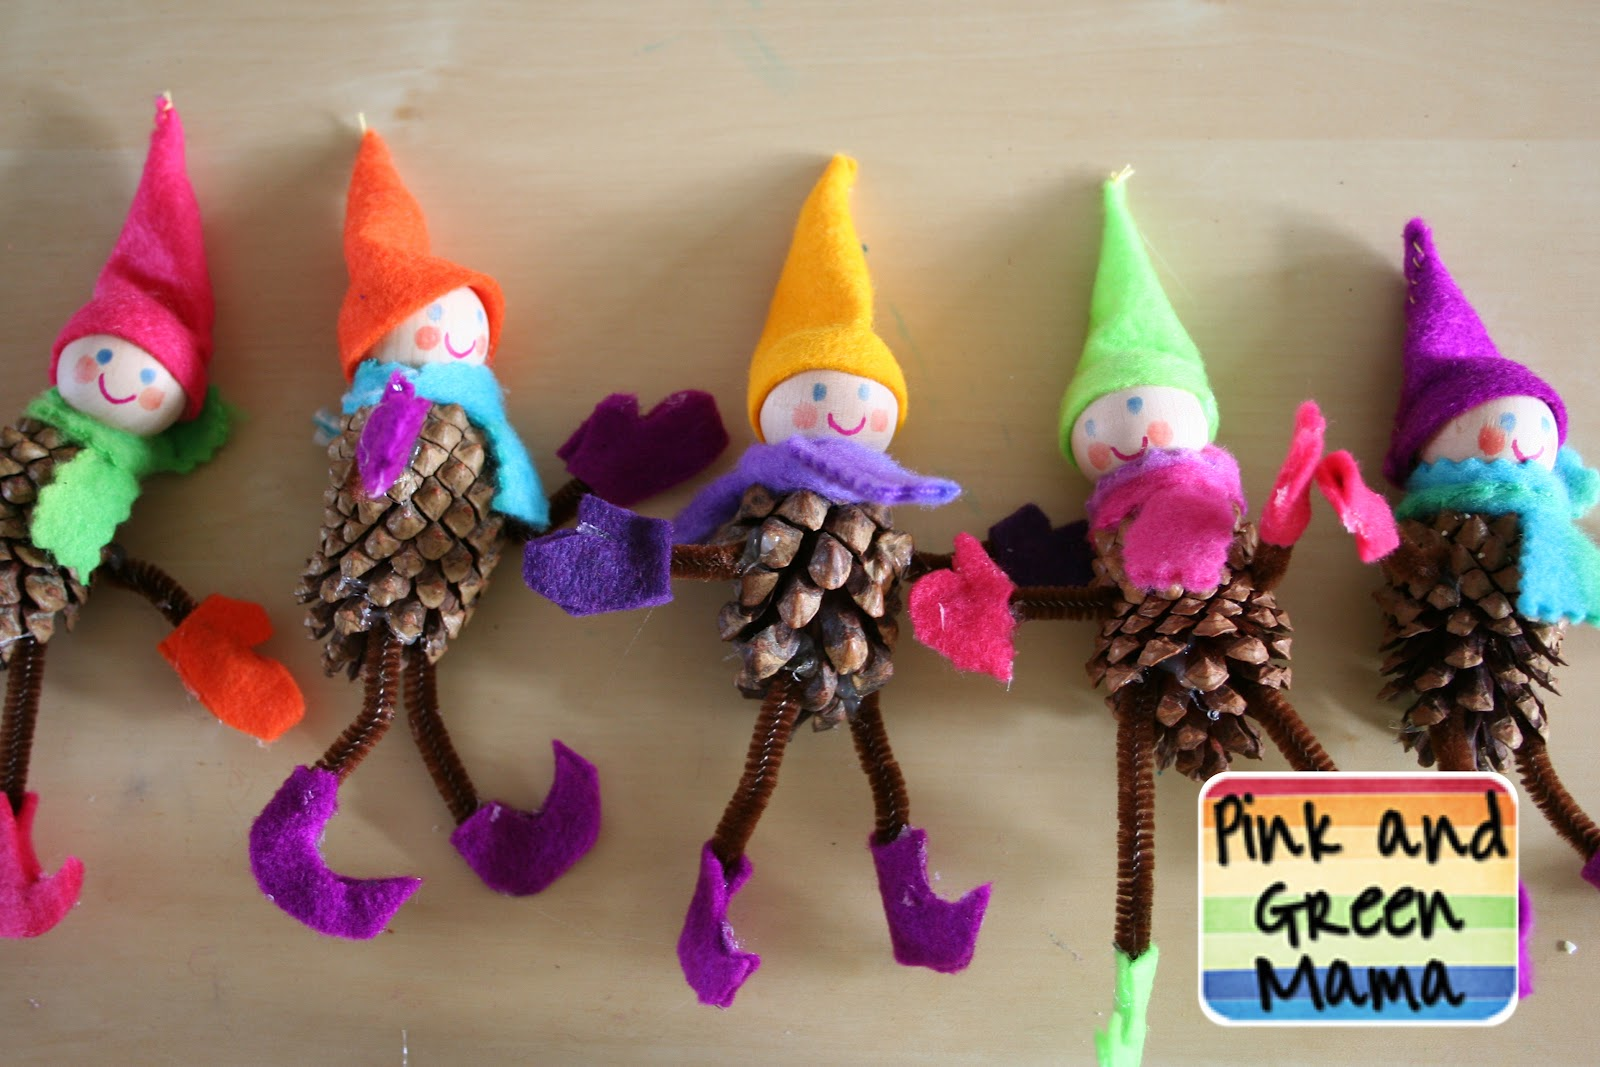 Pink and green mama homemade christmas crafts pine for Pine cone crafts for children